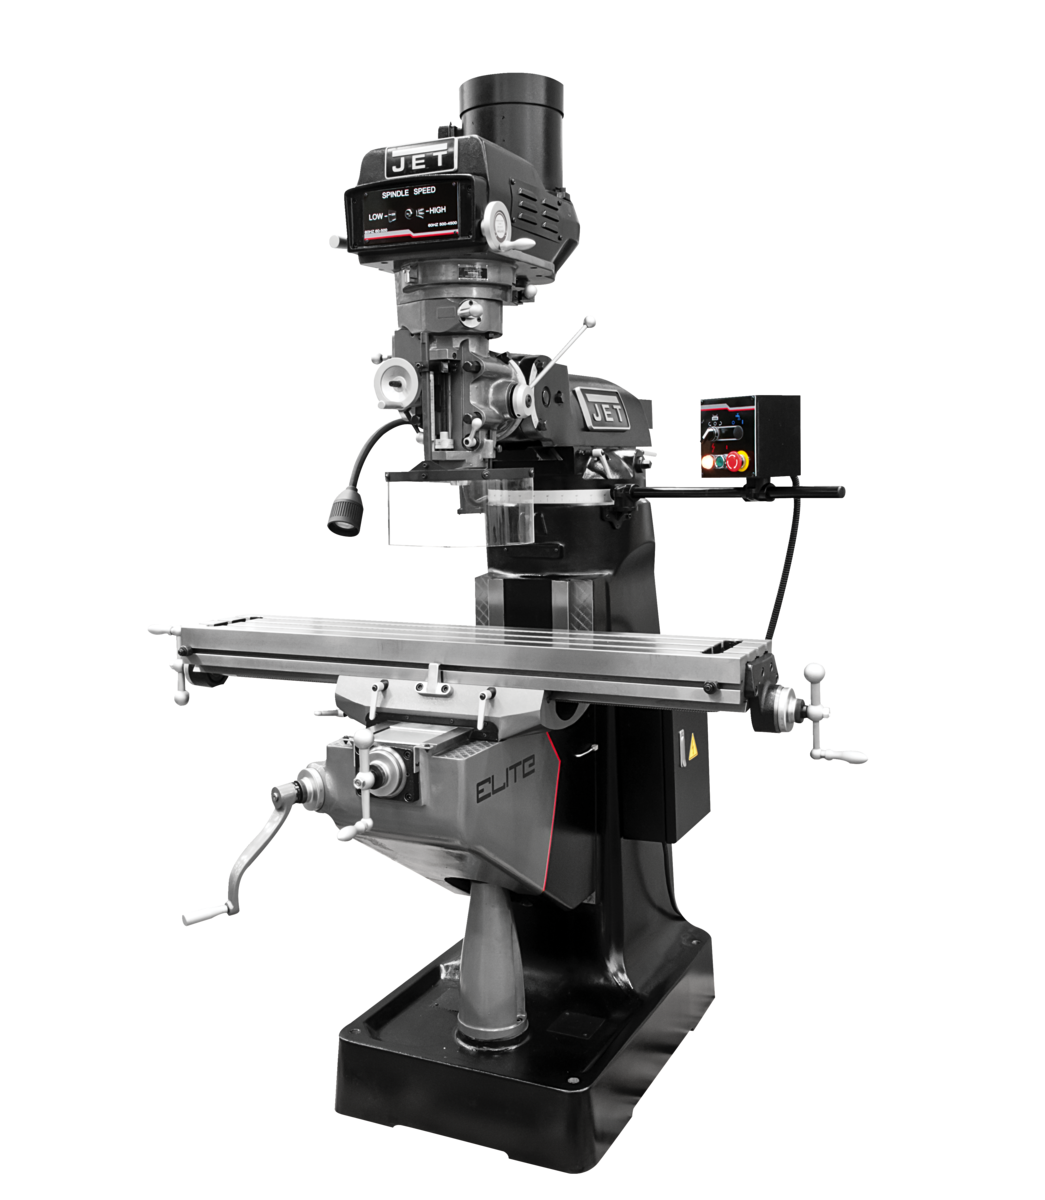 ETM-949 Mill with 3-Axis ACU-RITE 203 (Quill) DRO and Servo X, Y, Z-Axis Powerfeeds and USA Air Powered Draw Bar